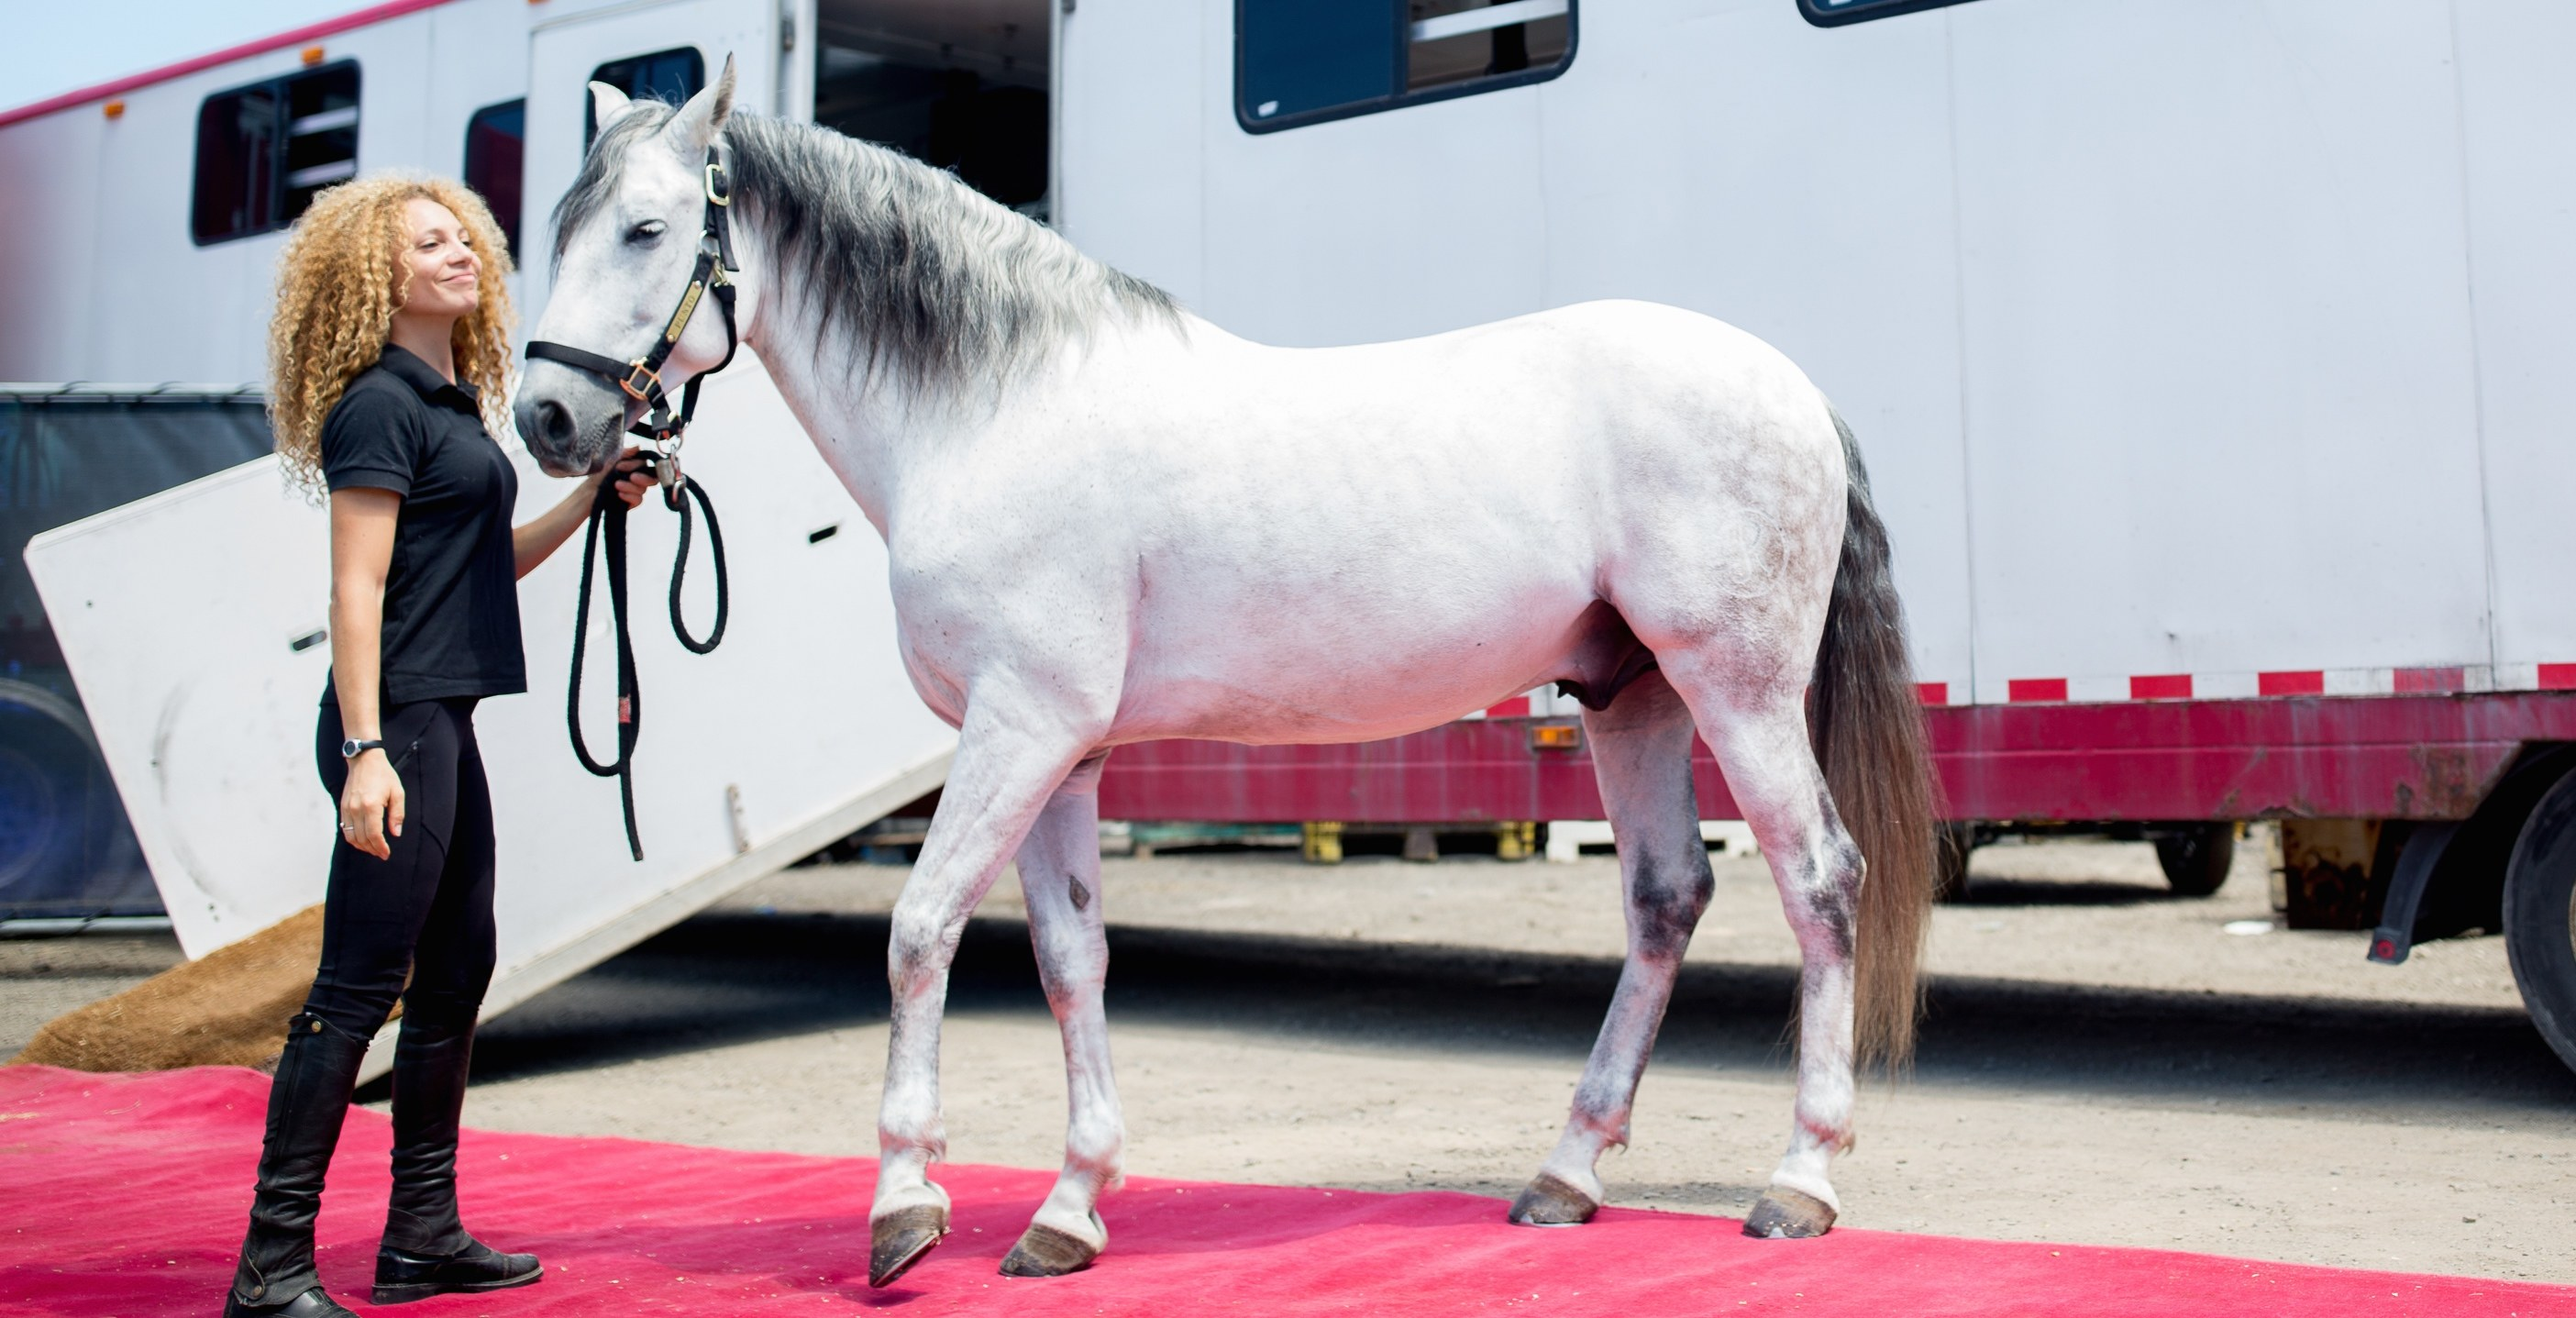 Cavalia horses trot onto the red carpet of Montreal's biggest equestrian stage